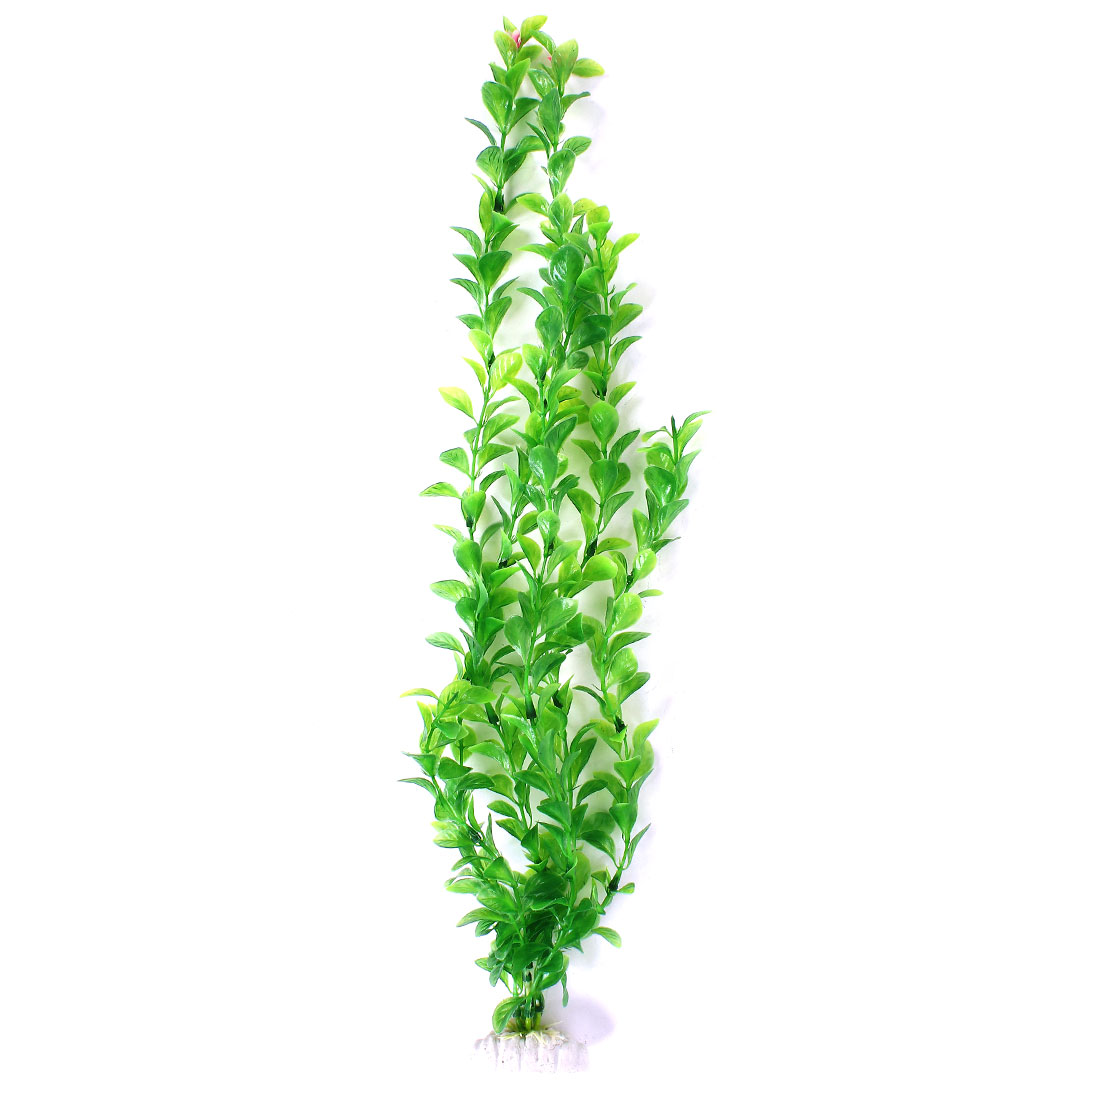 "Green Plastic Manmade Water Plants Decor 20.1"" High for Aquarium Fish Tank"